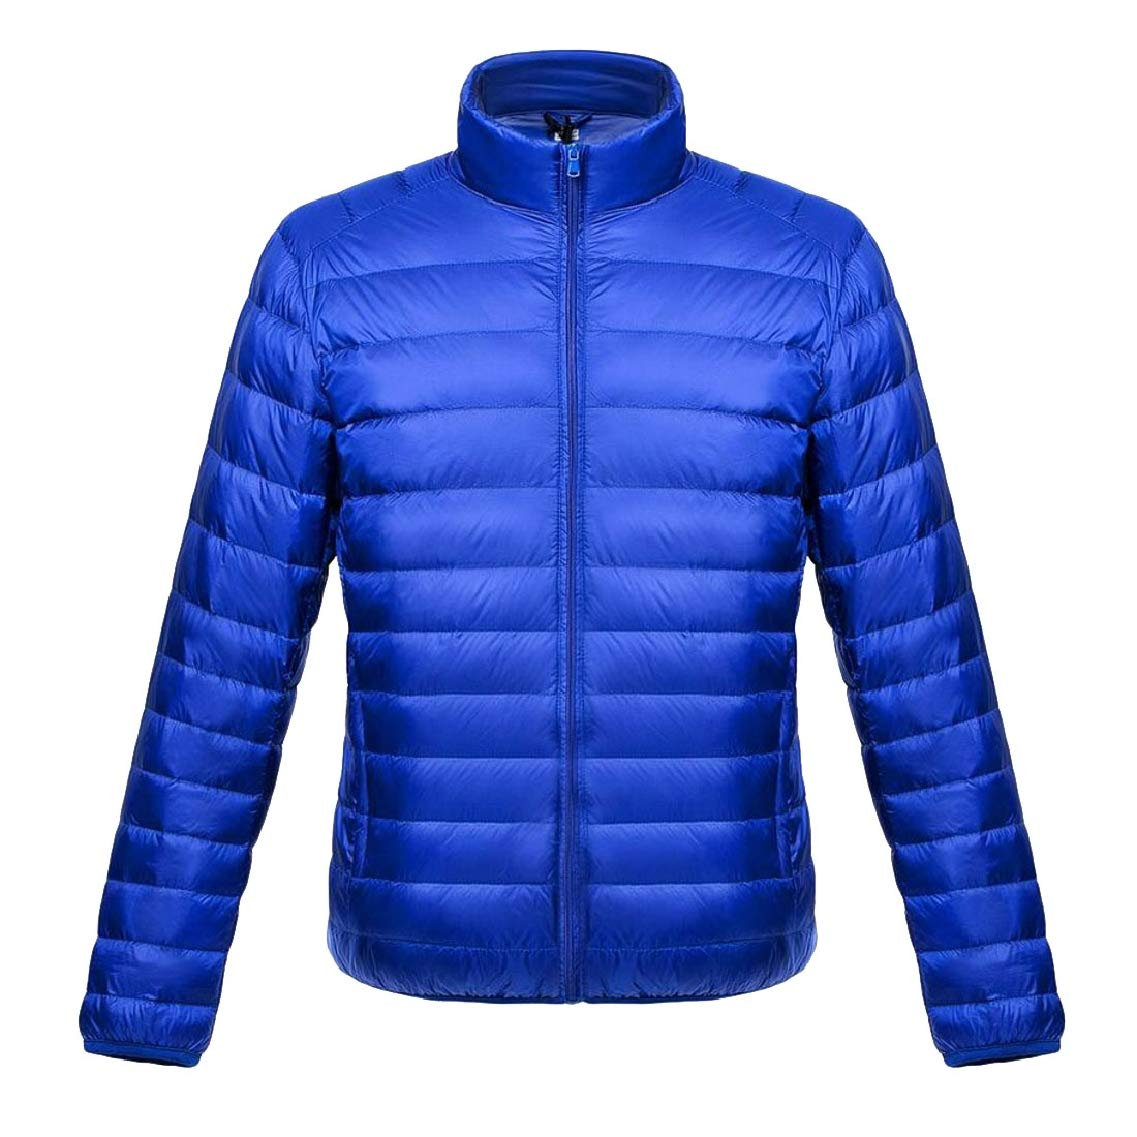 Jmwss QD Mens Solid Zip Lightweight Stand Collar Puffer Down Jacket Coat